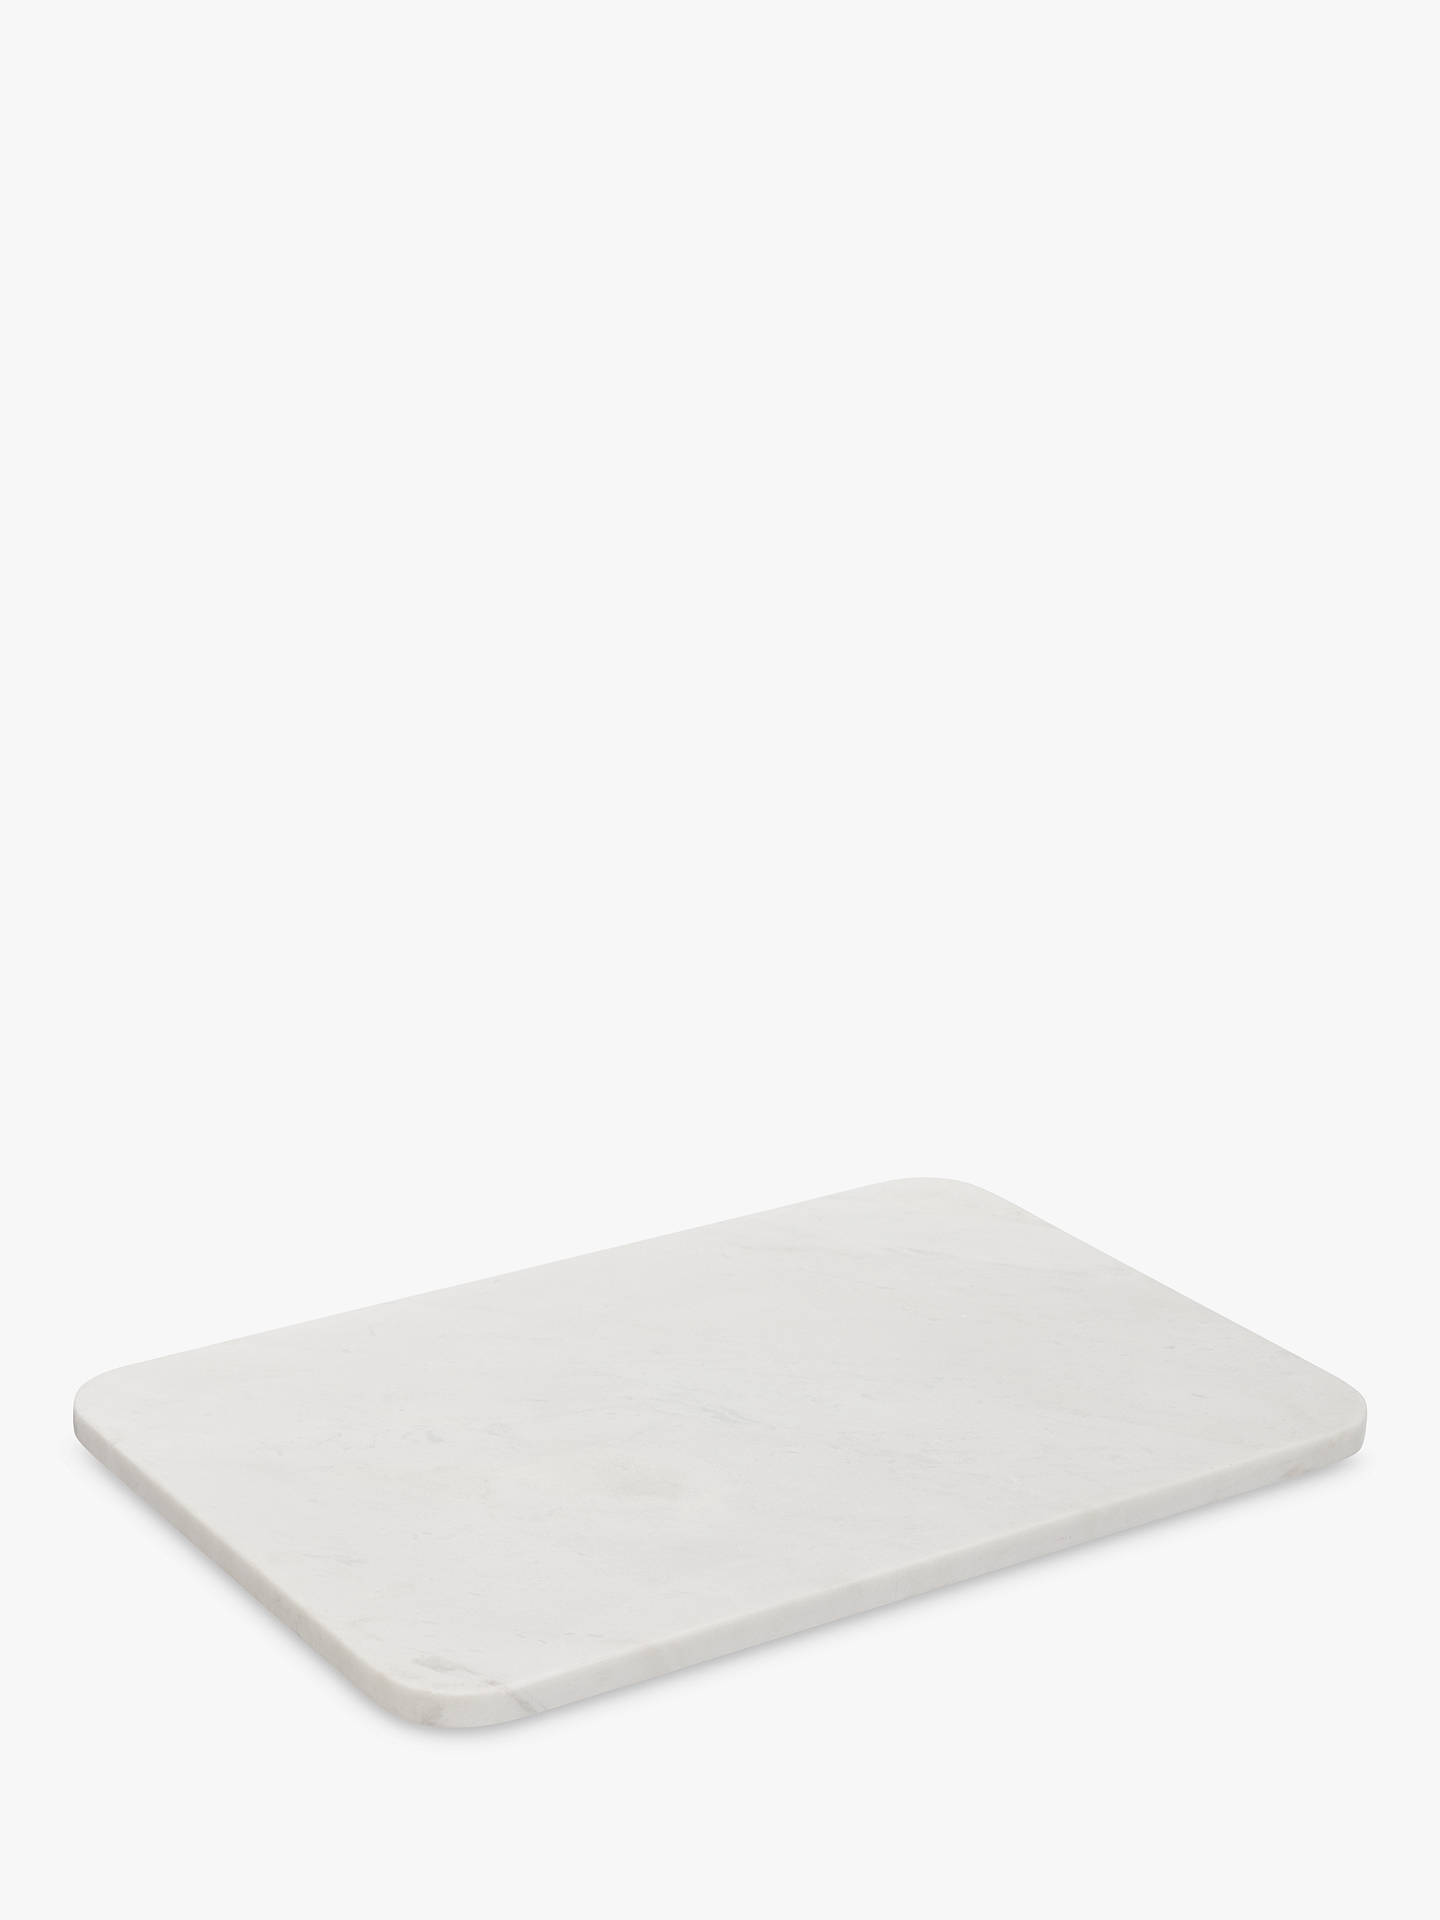 Buy Croft Collection Marble Board, White Online at johnlewis.com